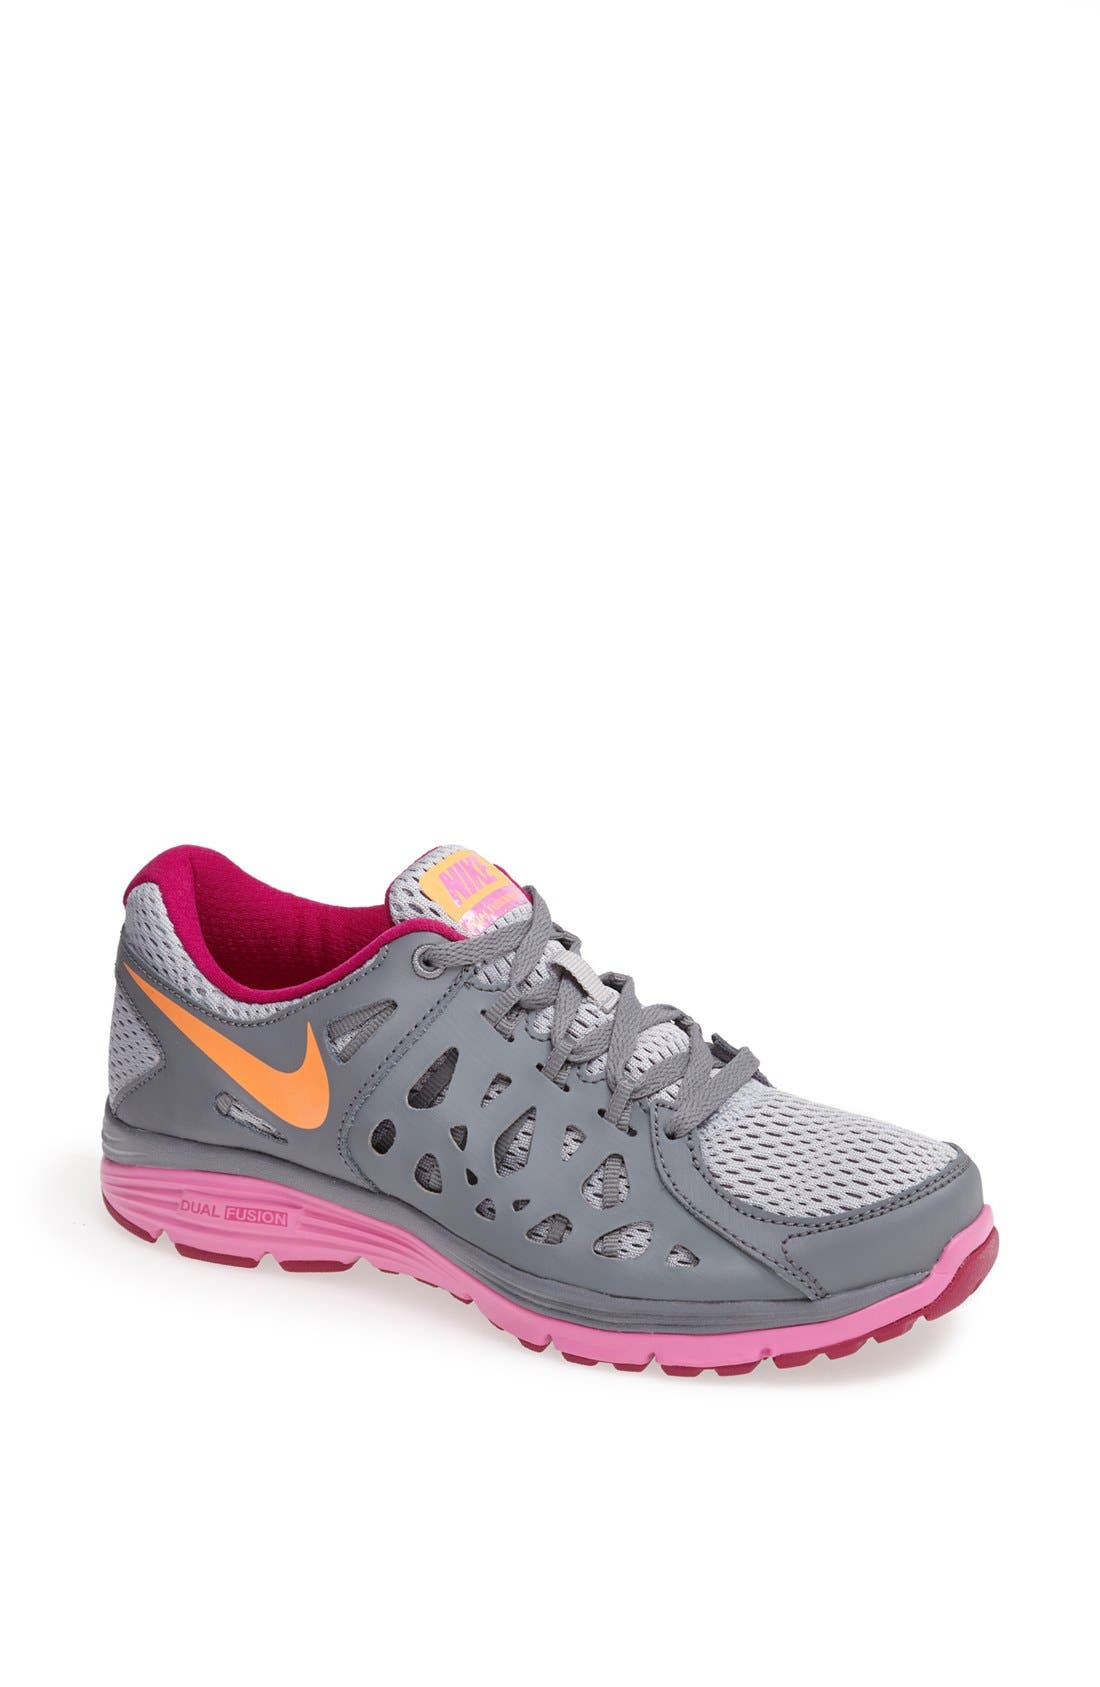 Main Image - Nike 'Dual Fusion 2.0' Running Shoe (Women)